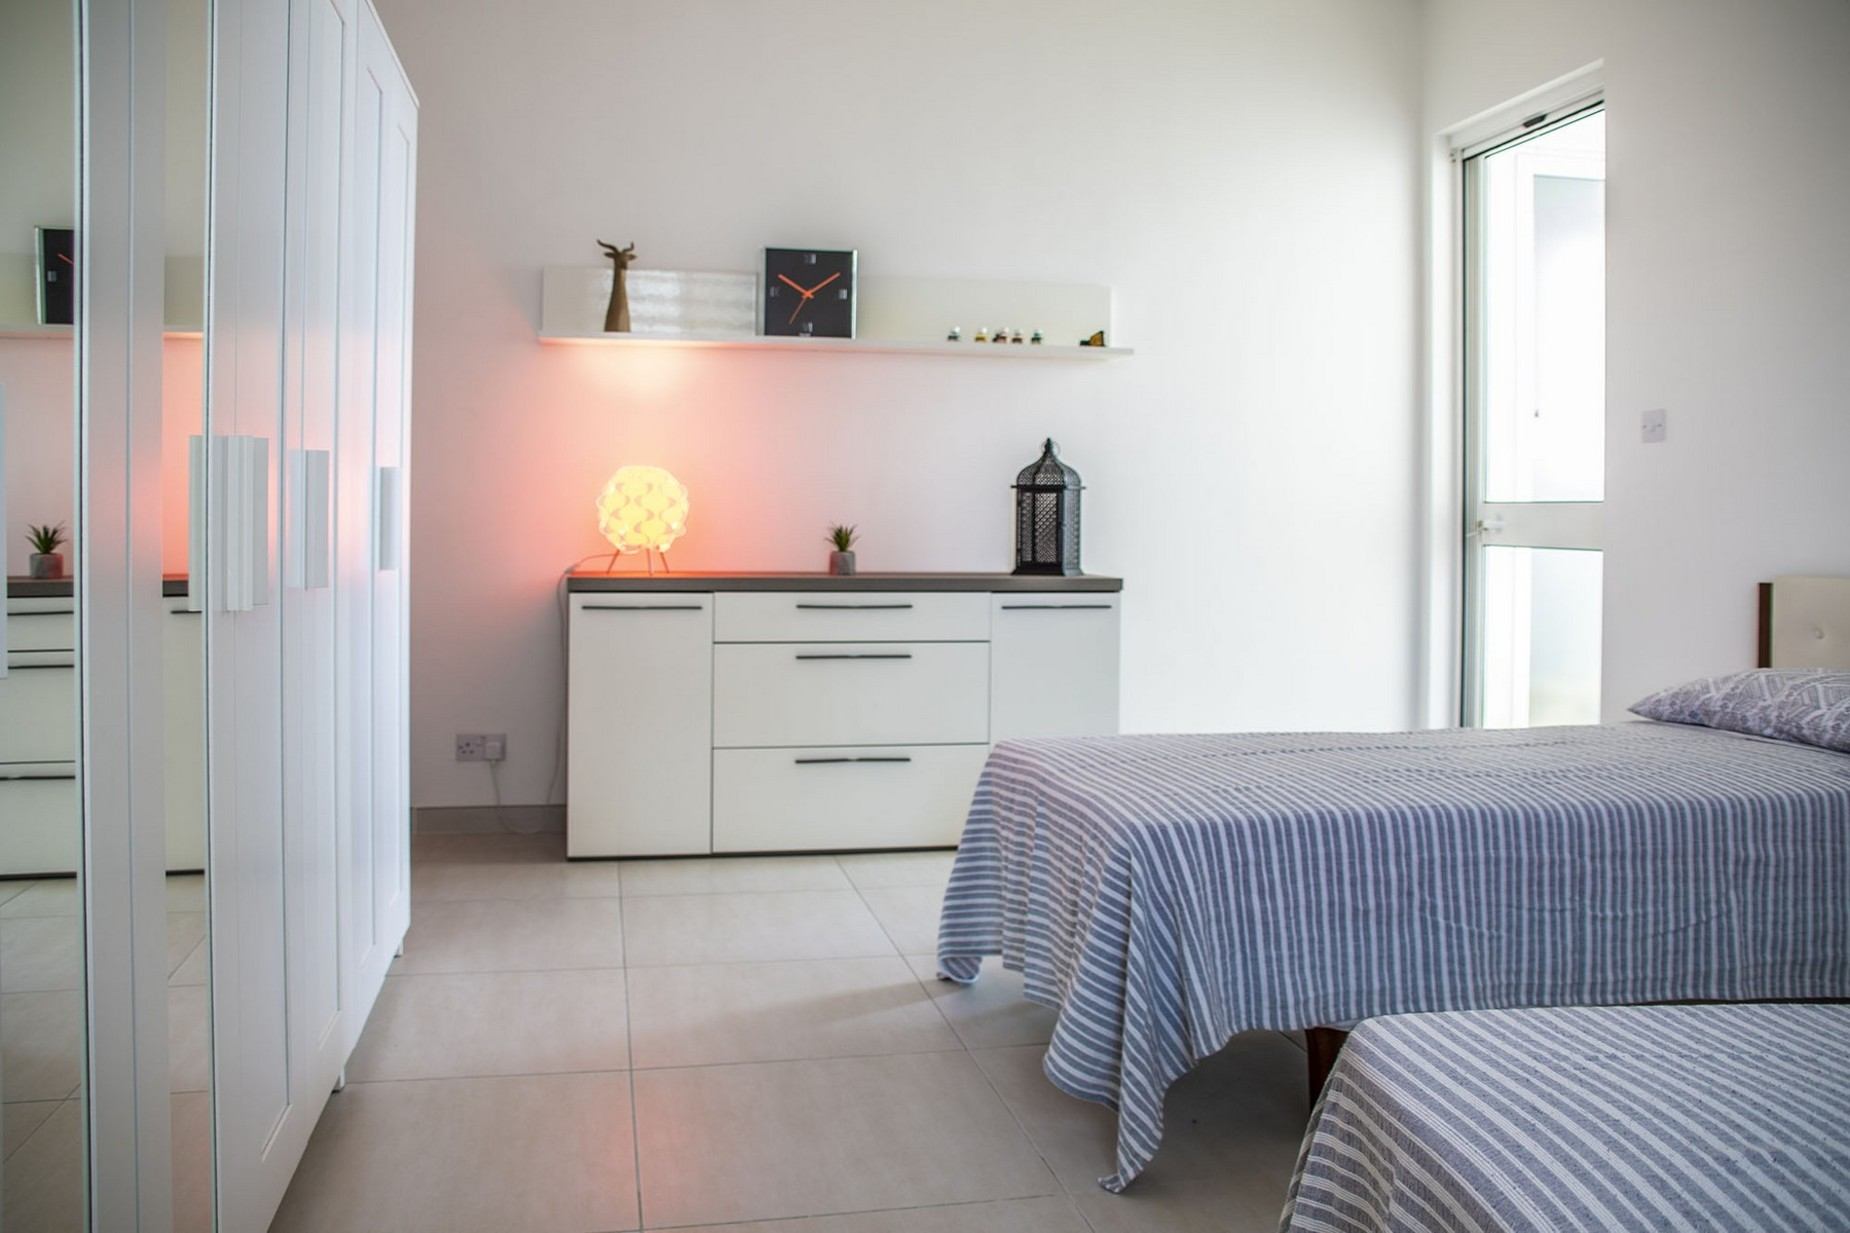 3 bed Apartment For Rent in Attard, Attard - thumb 16